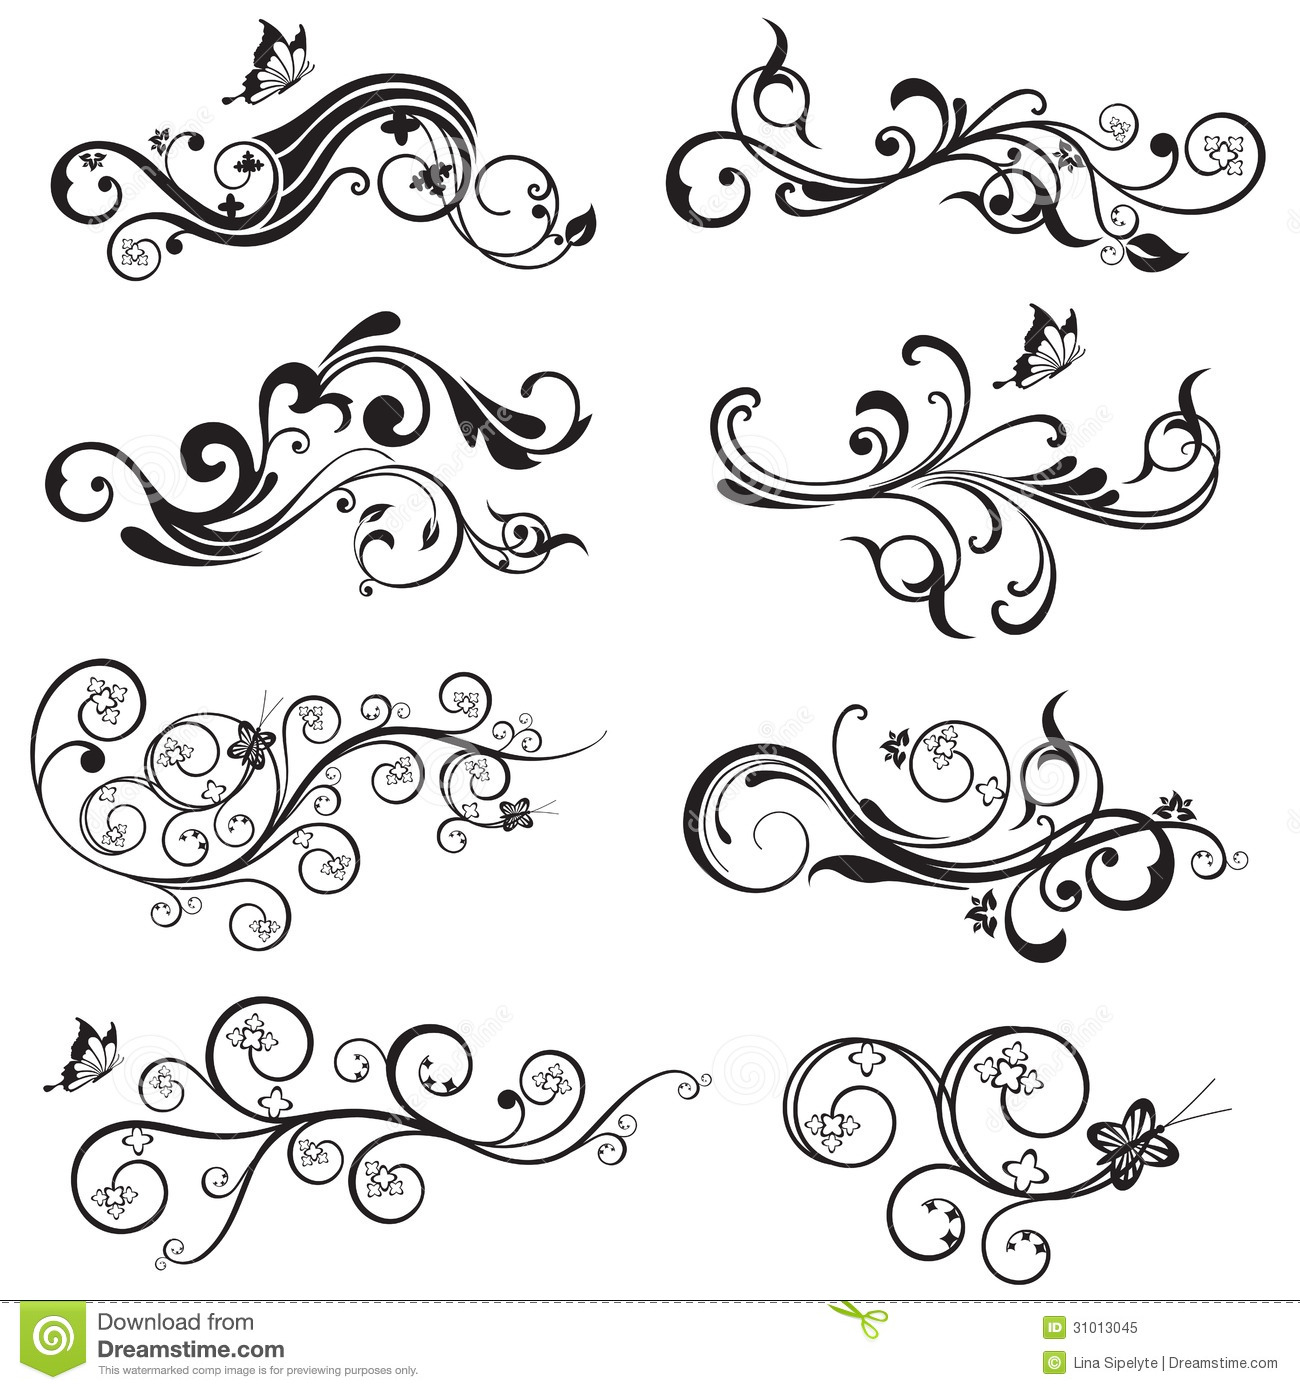 Beautiful flower and butterfly silhouettes design stock vector download beautiful flower and butterfly silhouettes design stock vector illustration of flowering bloom mightylinksfo